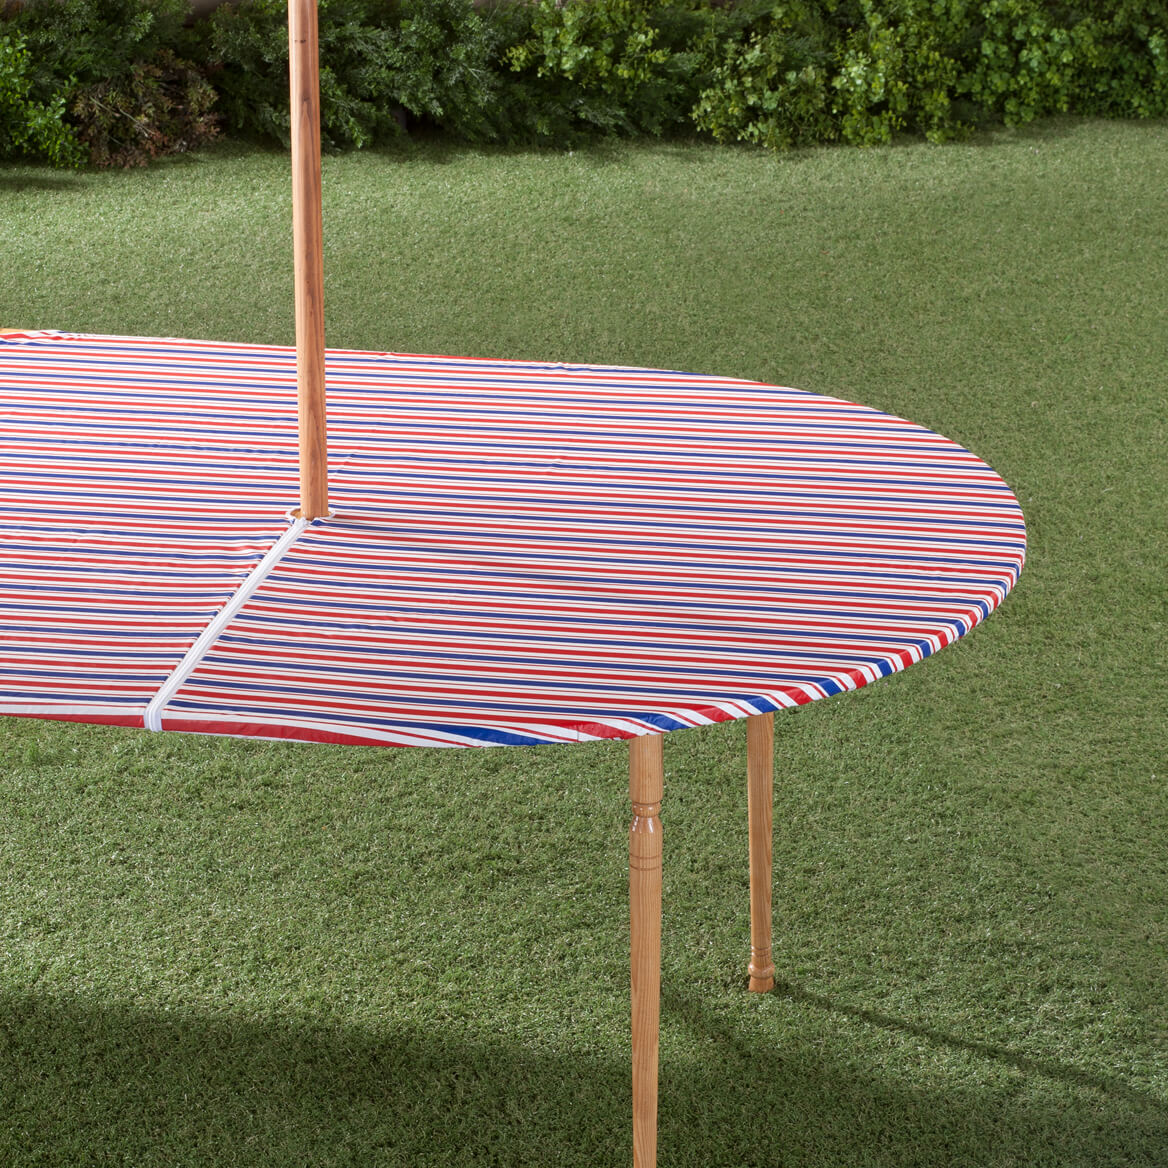 Patio Umbrella Covers With Zipper: Patriotic Zippered Elasticized Umbrella Table Cover